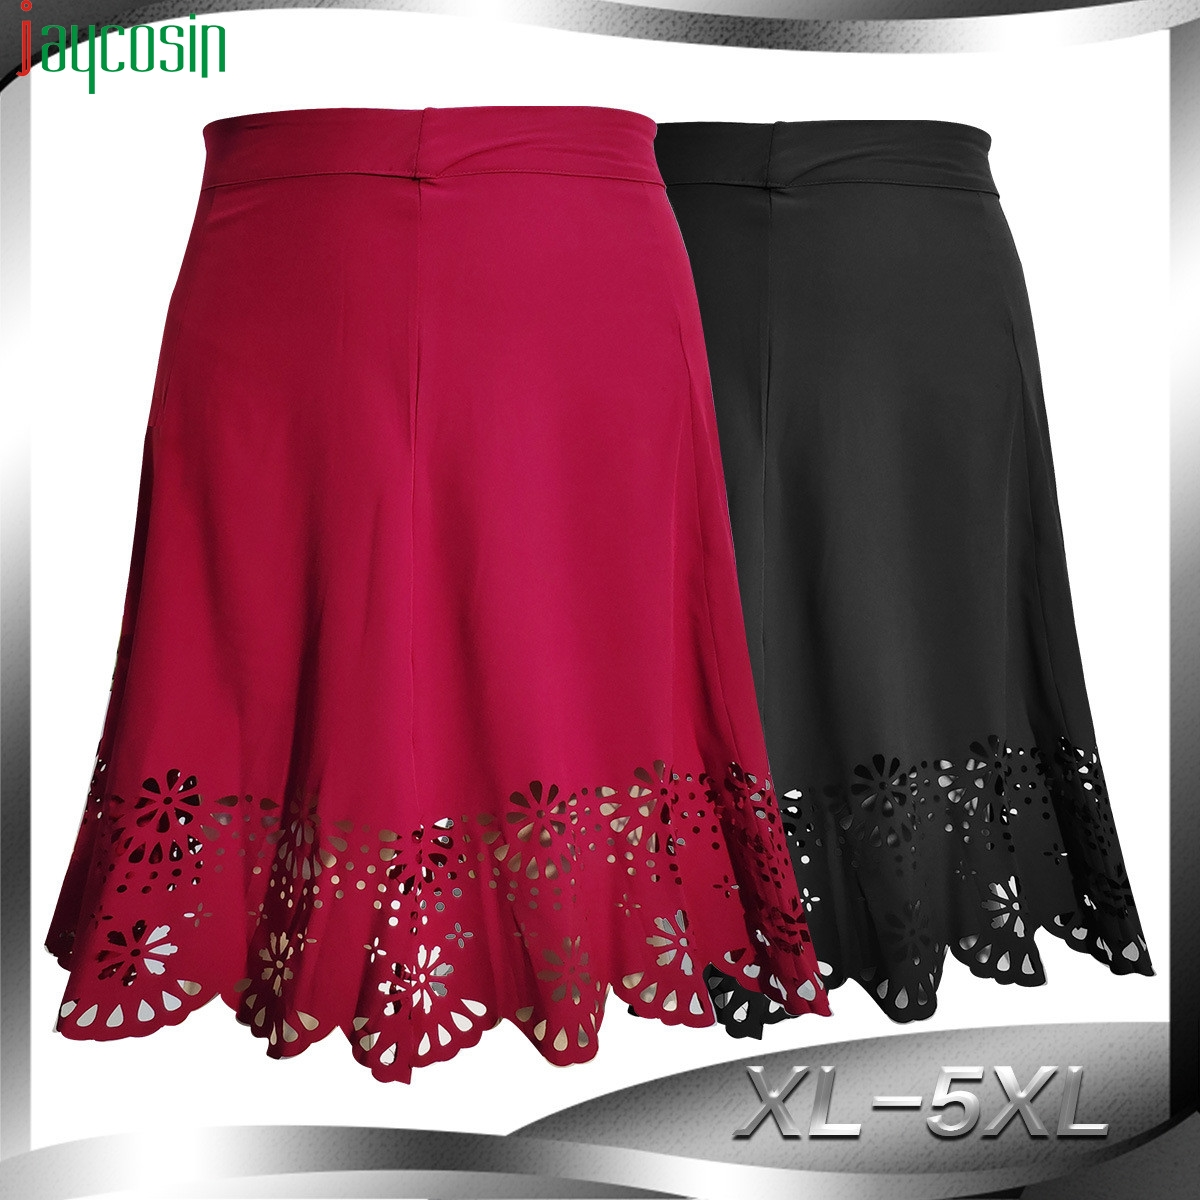 Women Skirt Zipper Lace Hollow High Waist Loose Solid Color Fashion Female Skirt Casual Ladies Plus Size Party Skirt